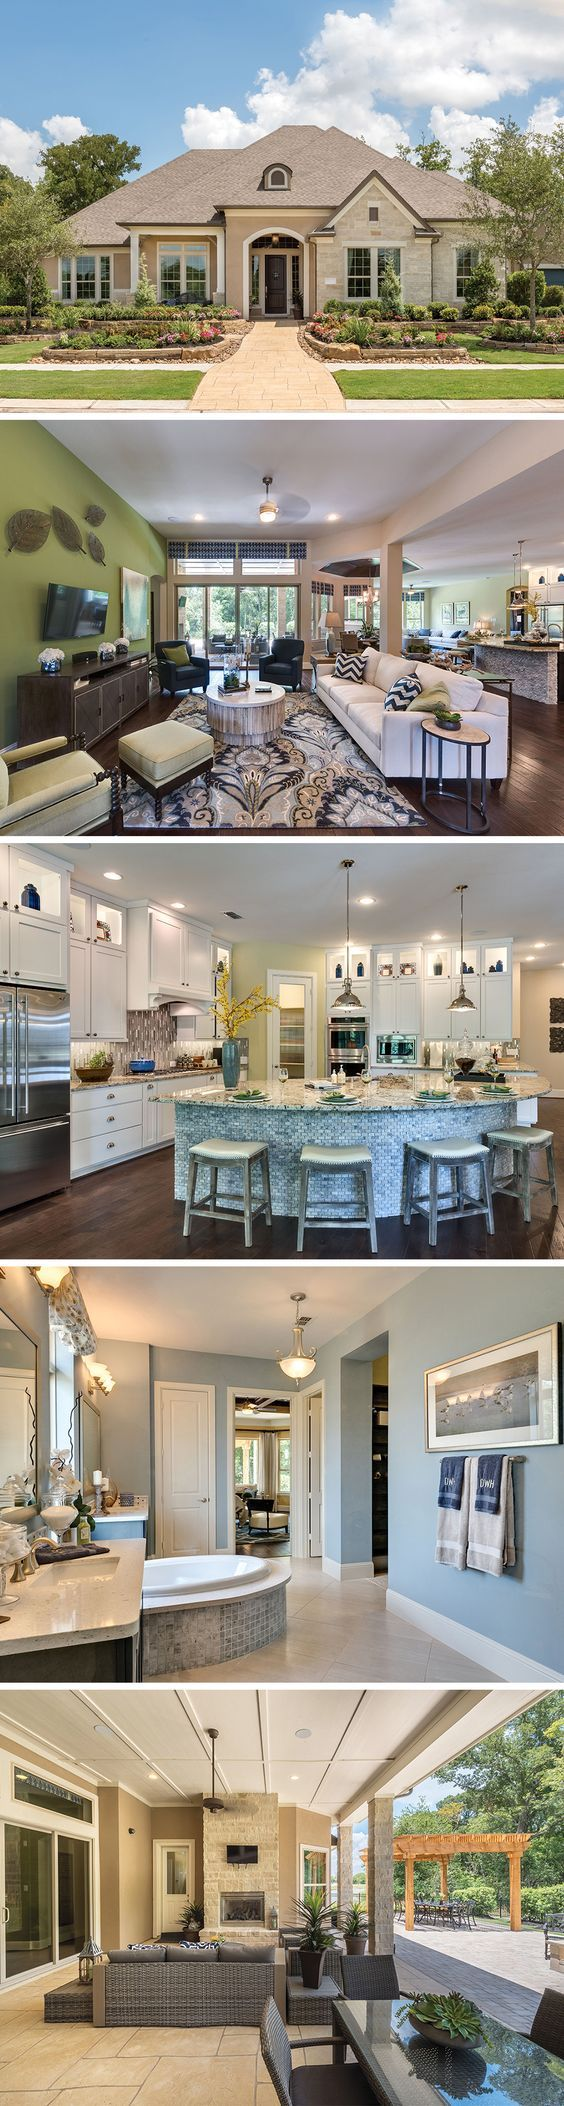 Superb Find A New Home In Fulshear, TX! Youu0027ll Love The Intricate Details